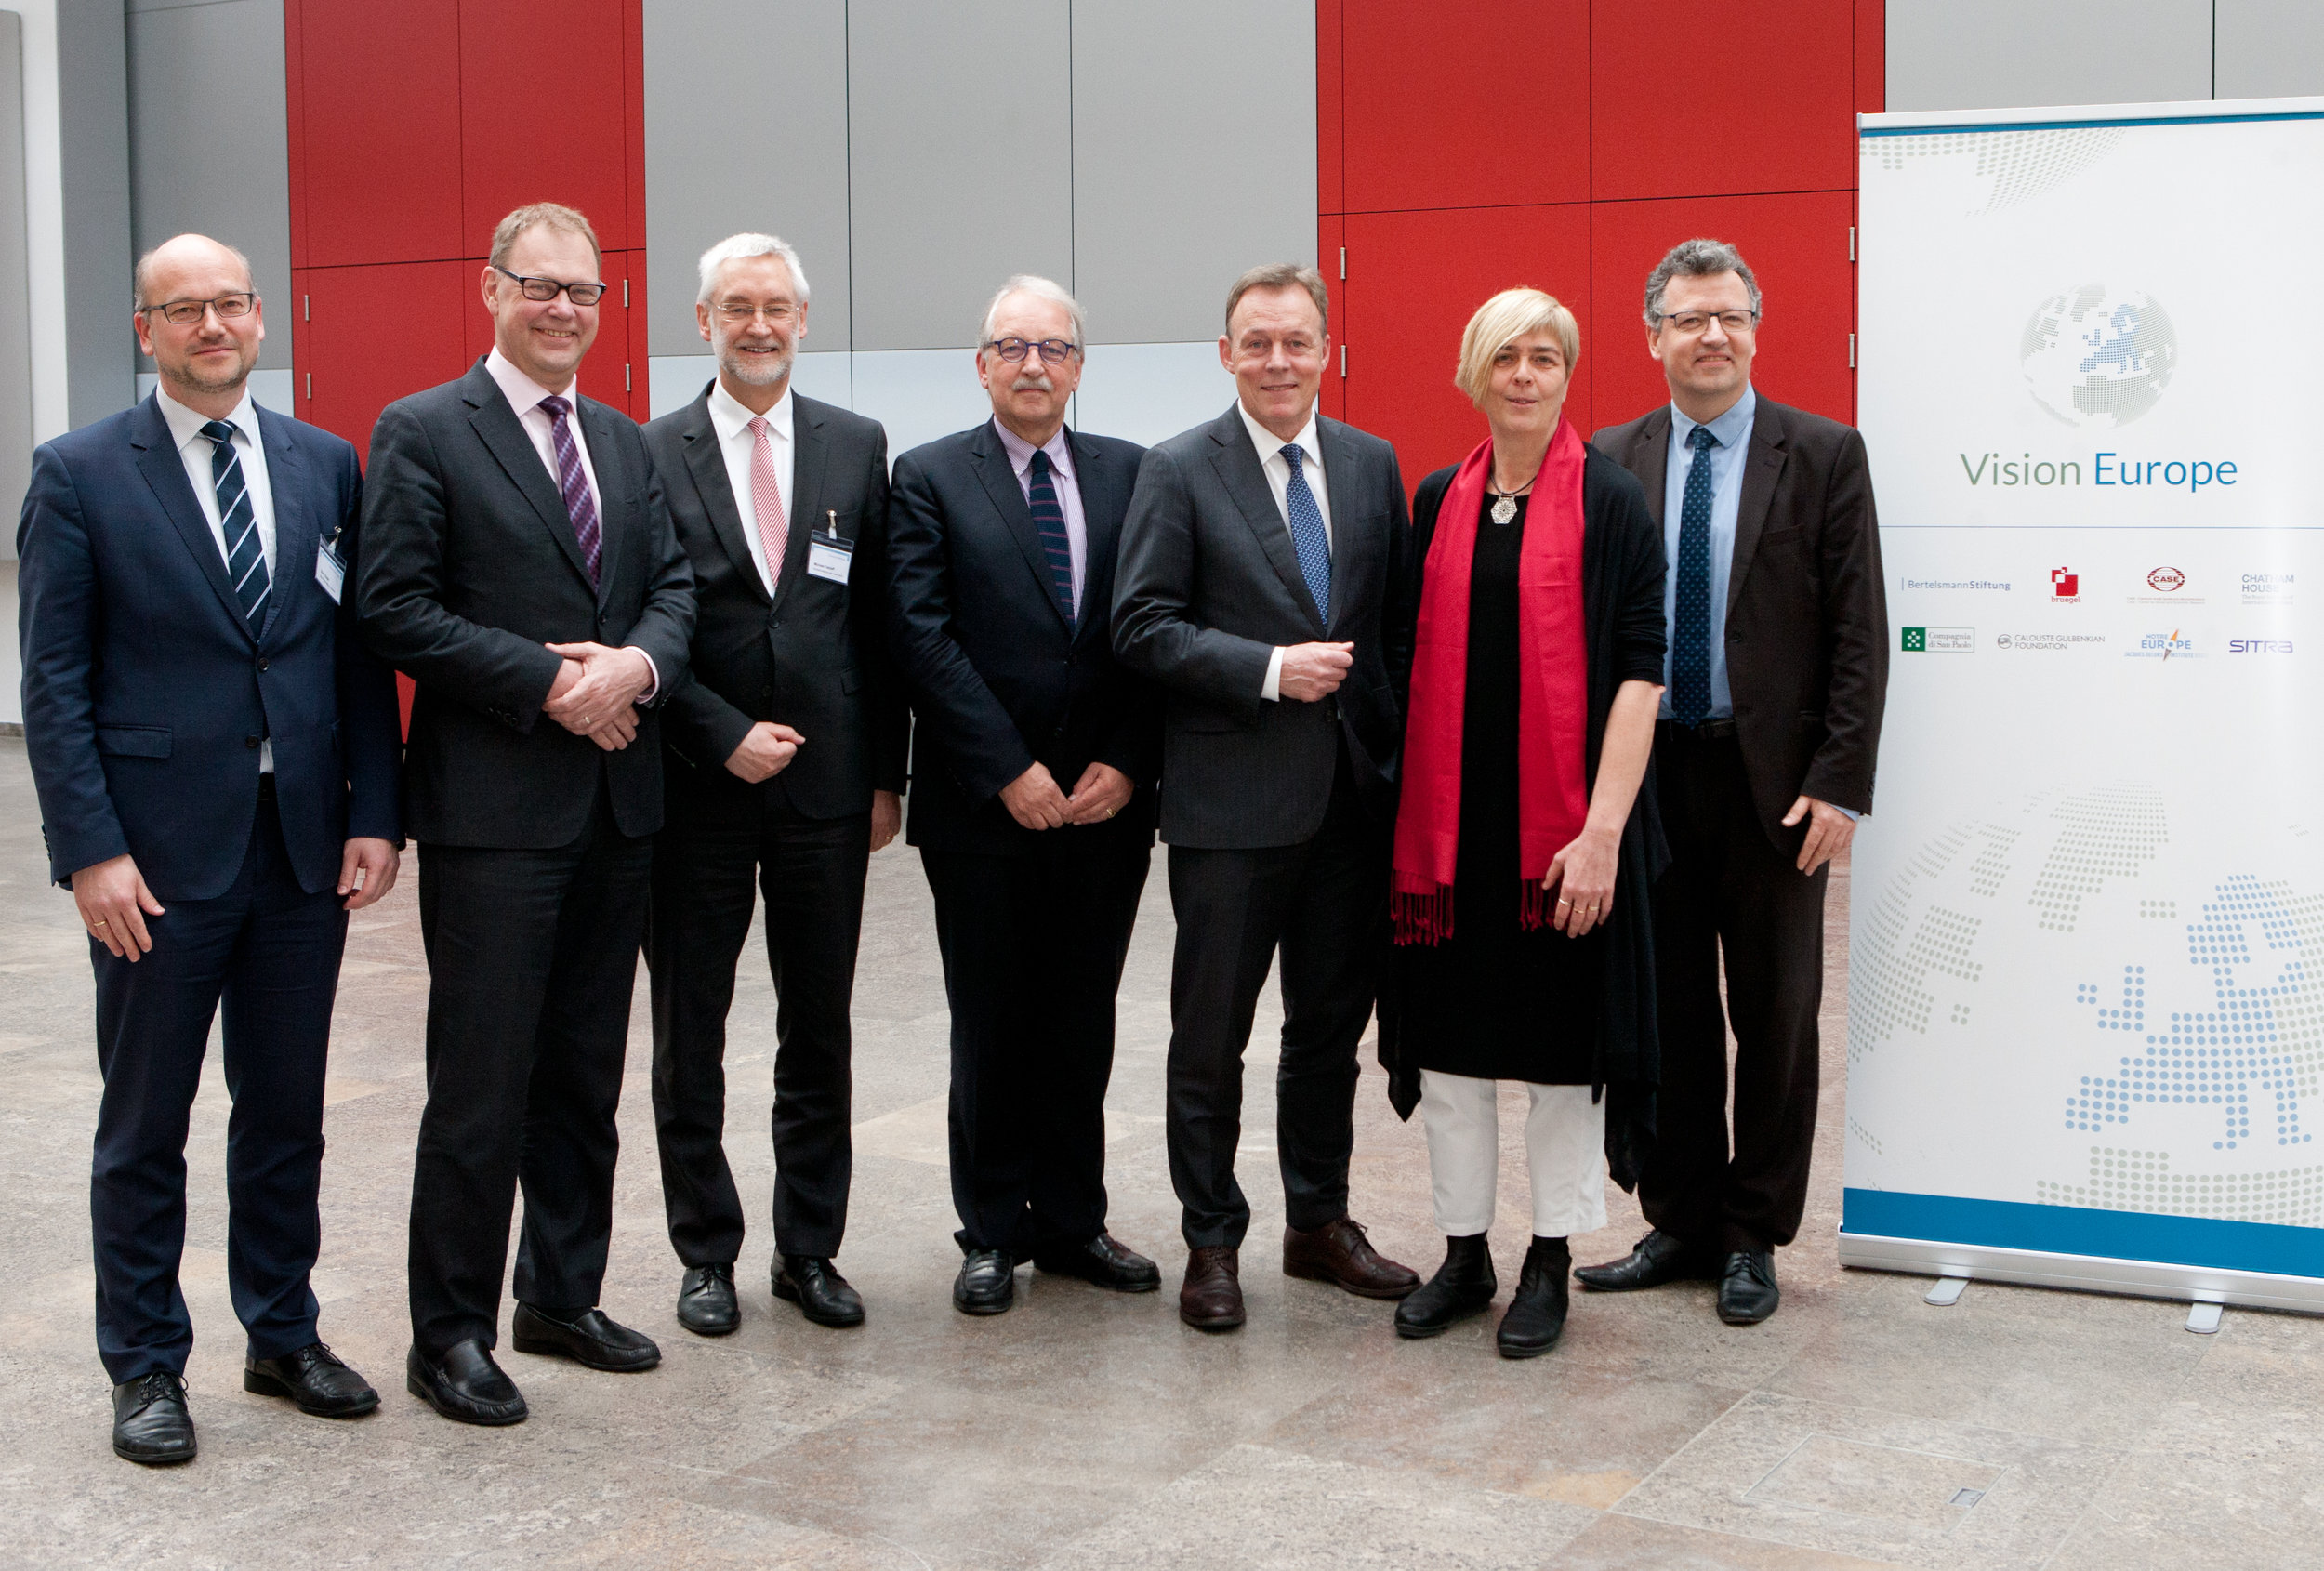 From left to right: Eric Thode (Director, Bertelsmann Stiftung), Aart De Geus (CEO, Bertelsmann Stiftung), Michael Tetzlaff (Head of Directorate, Directorate for Migration, Refugees, European Harmonisation, Federal Ministry of the Interior), Matthias Ruete (Director-General of Directorate-General for Migration and Home Affairs, European Commission), Thomas Oppermann (Chairman of the SPD Parliamentary Group), Katharina Lumpp (Representative of the United Nations High Commissioner for Refugees in Germany), and Ulrich Kober (Director, Bertelsmann Stiftung).